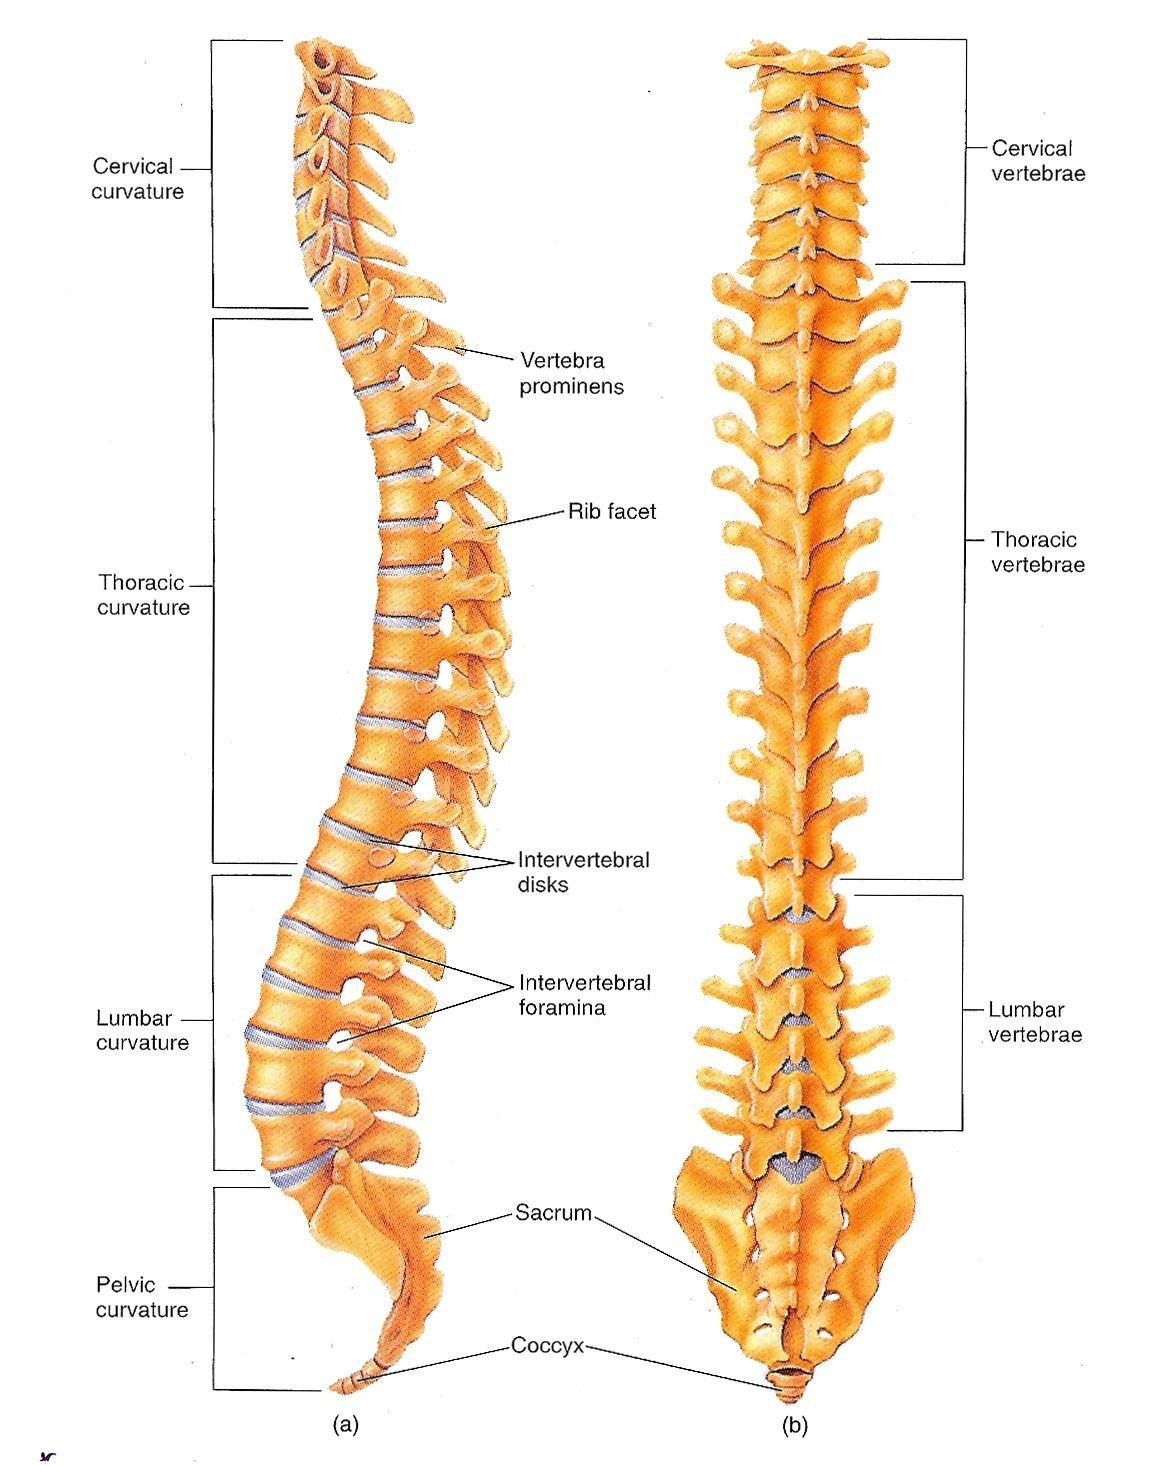 vertebrae pictures diagrams vertebrae pictures diagrams photos vertebral column diagram labeled anatomy and physiology [ 1152 x 1466 Pixel ]